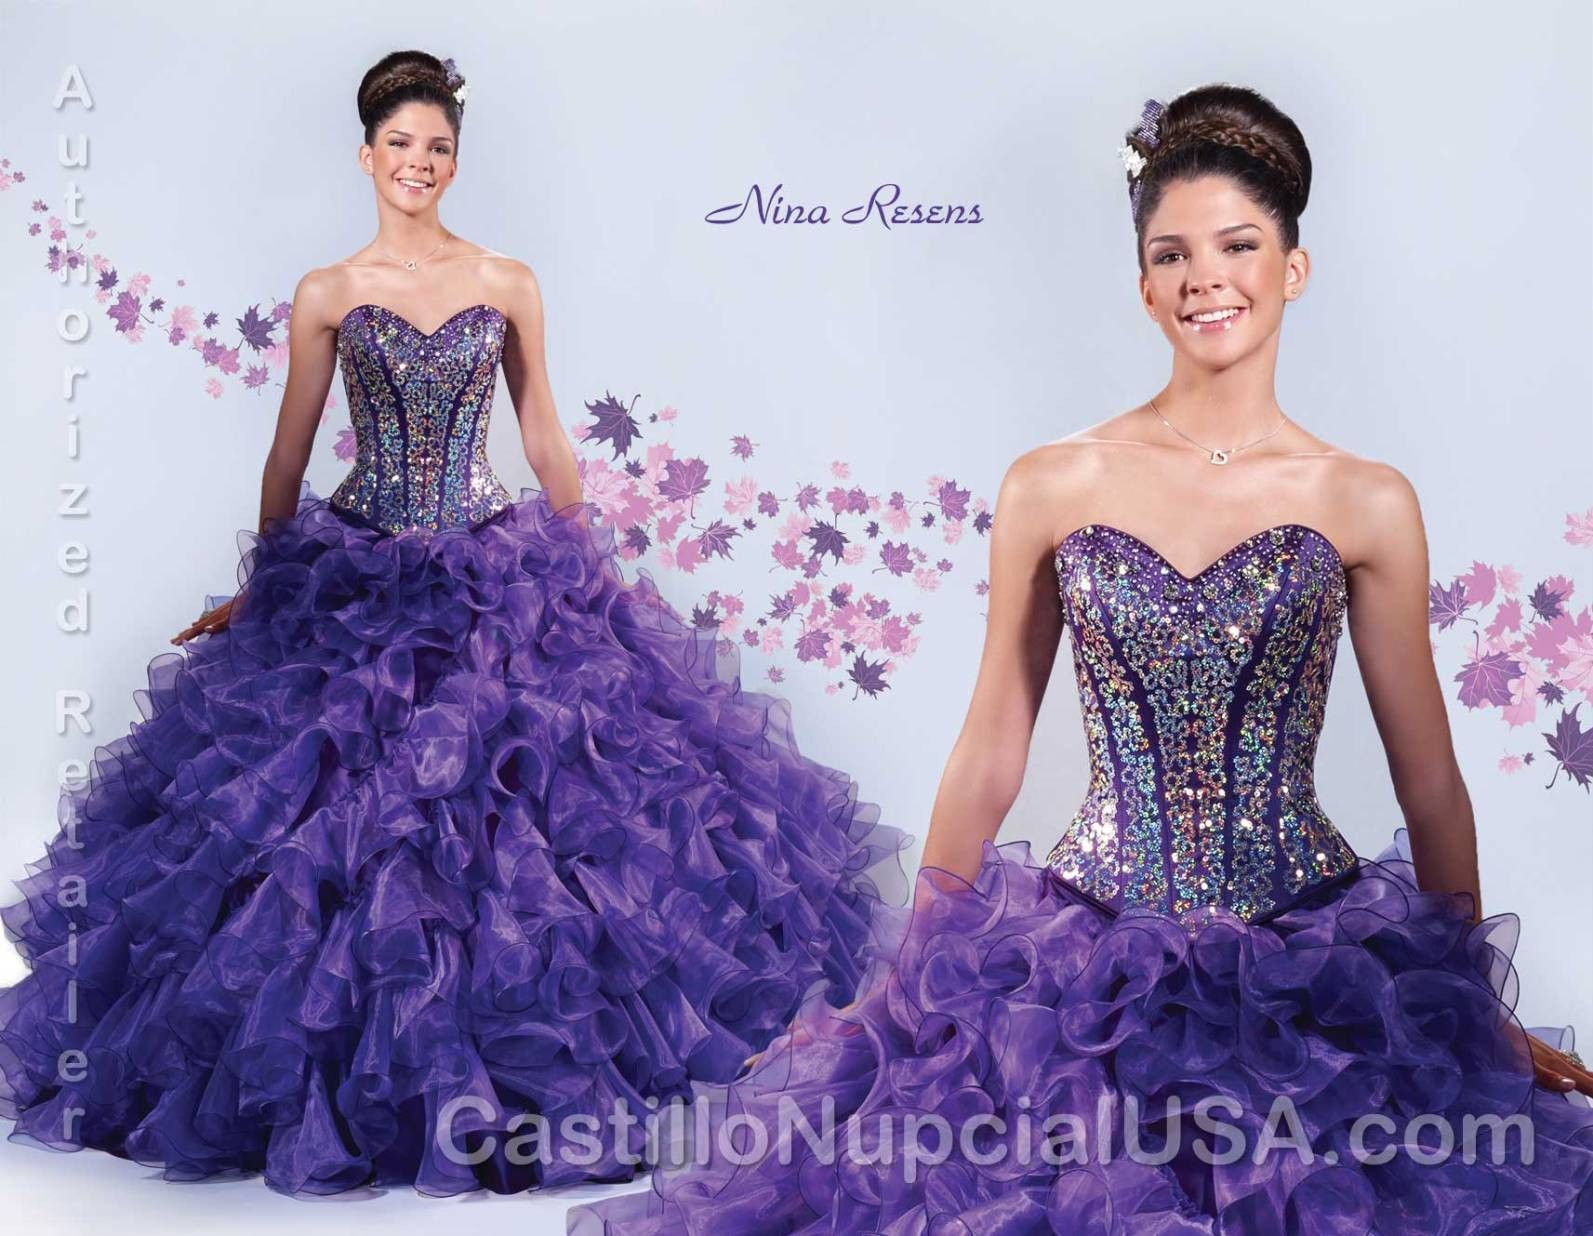 Strapless Quinceanera Dresses with Ruffled Skirt